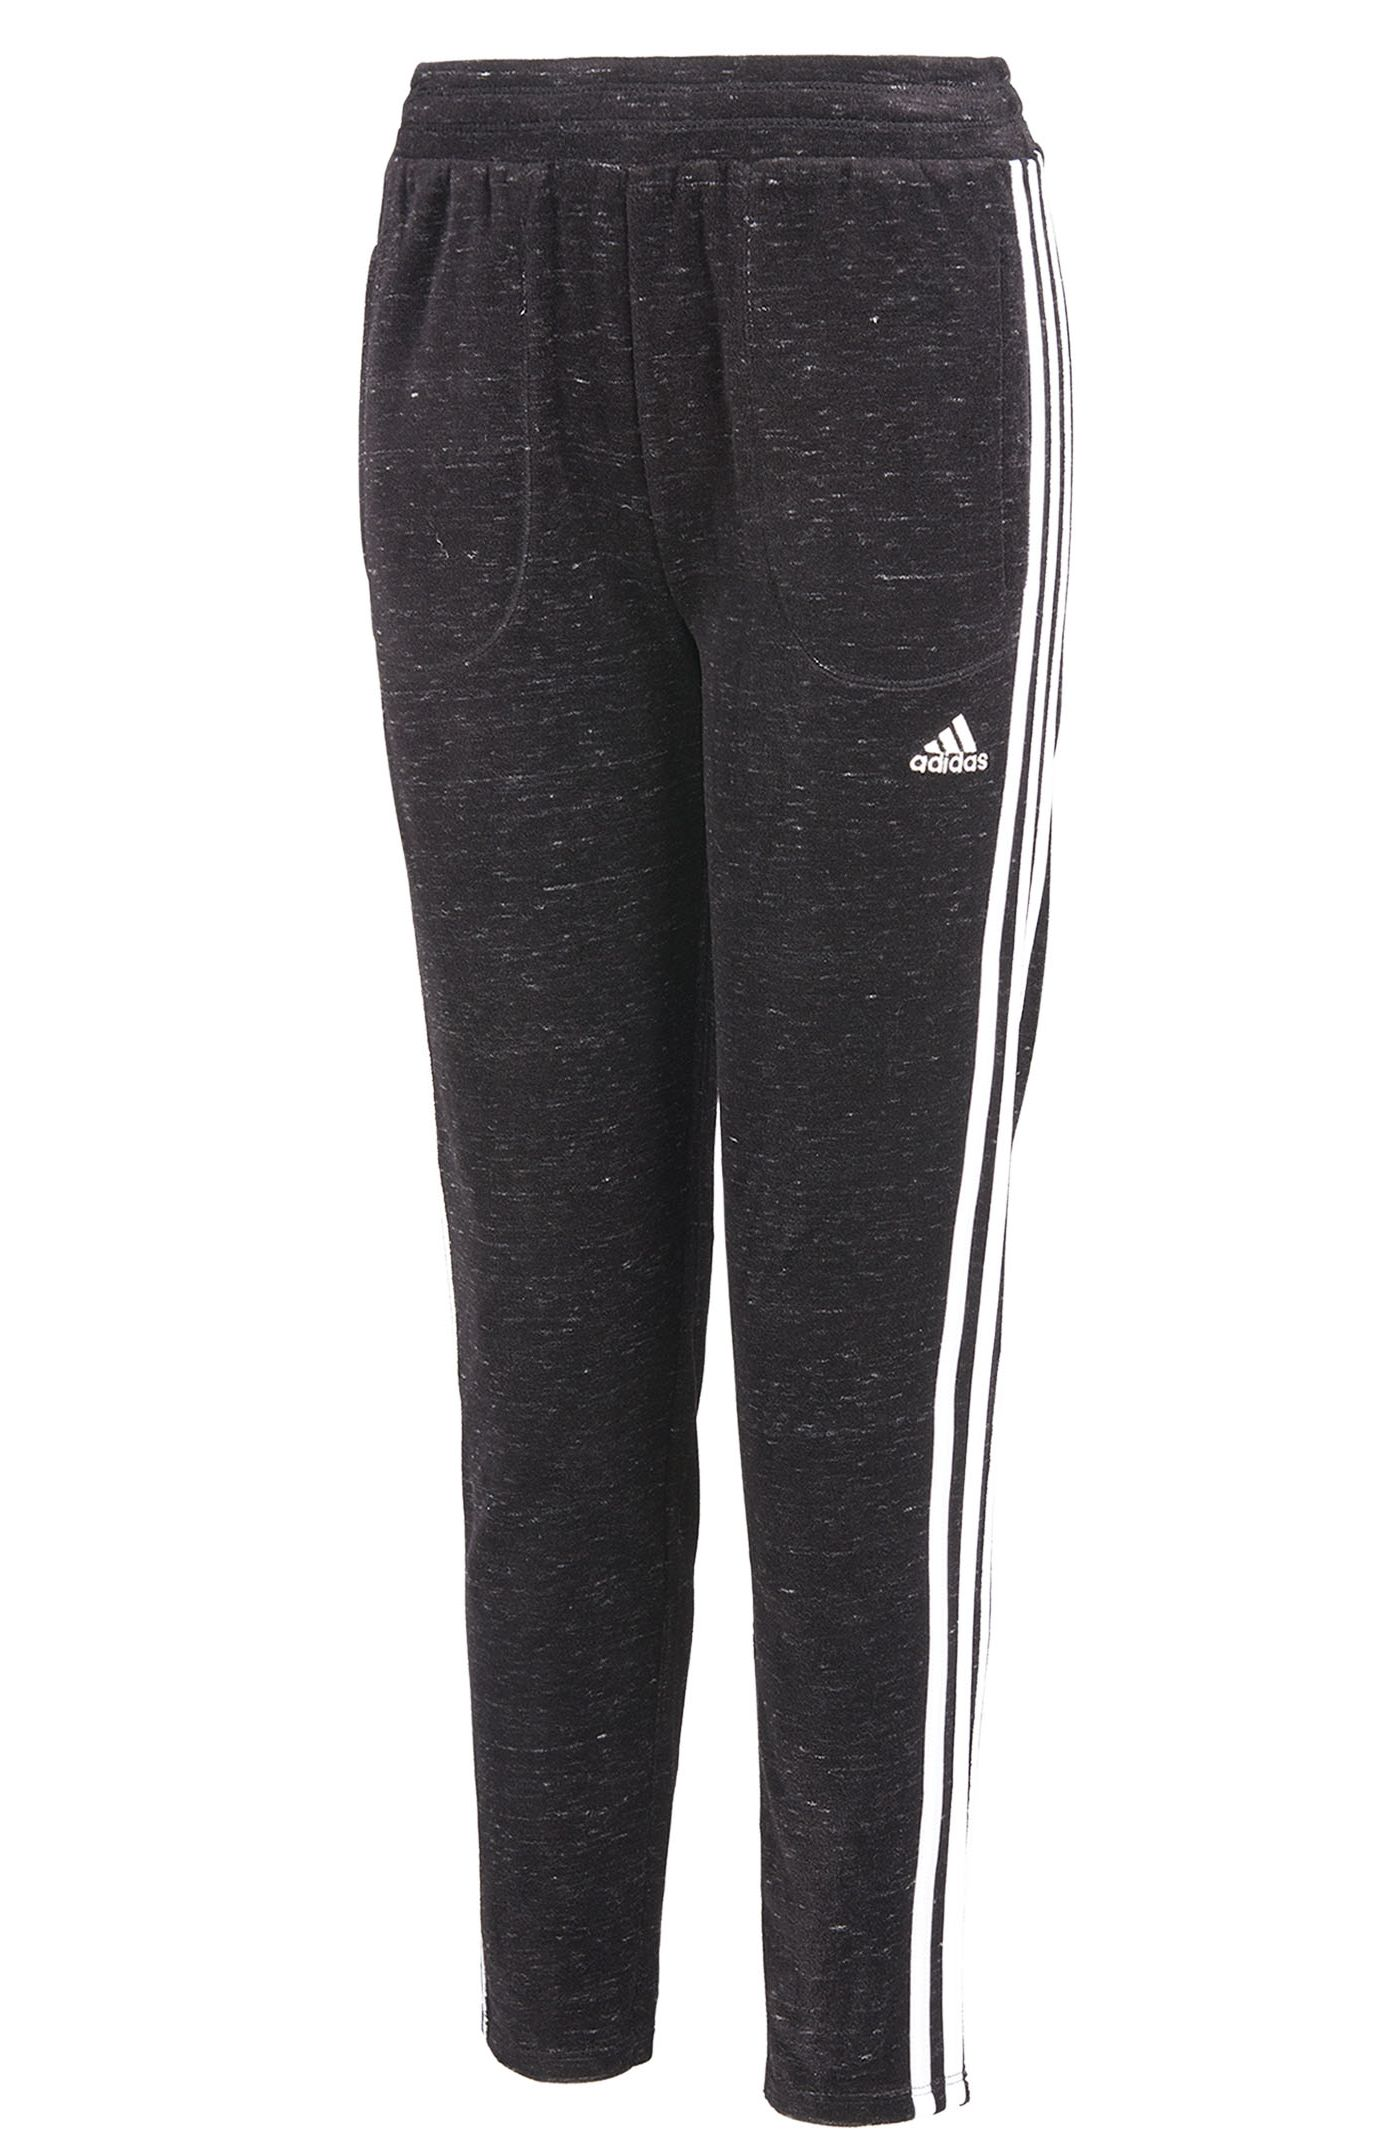 adidas Girls' Velour Tapered Pants